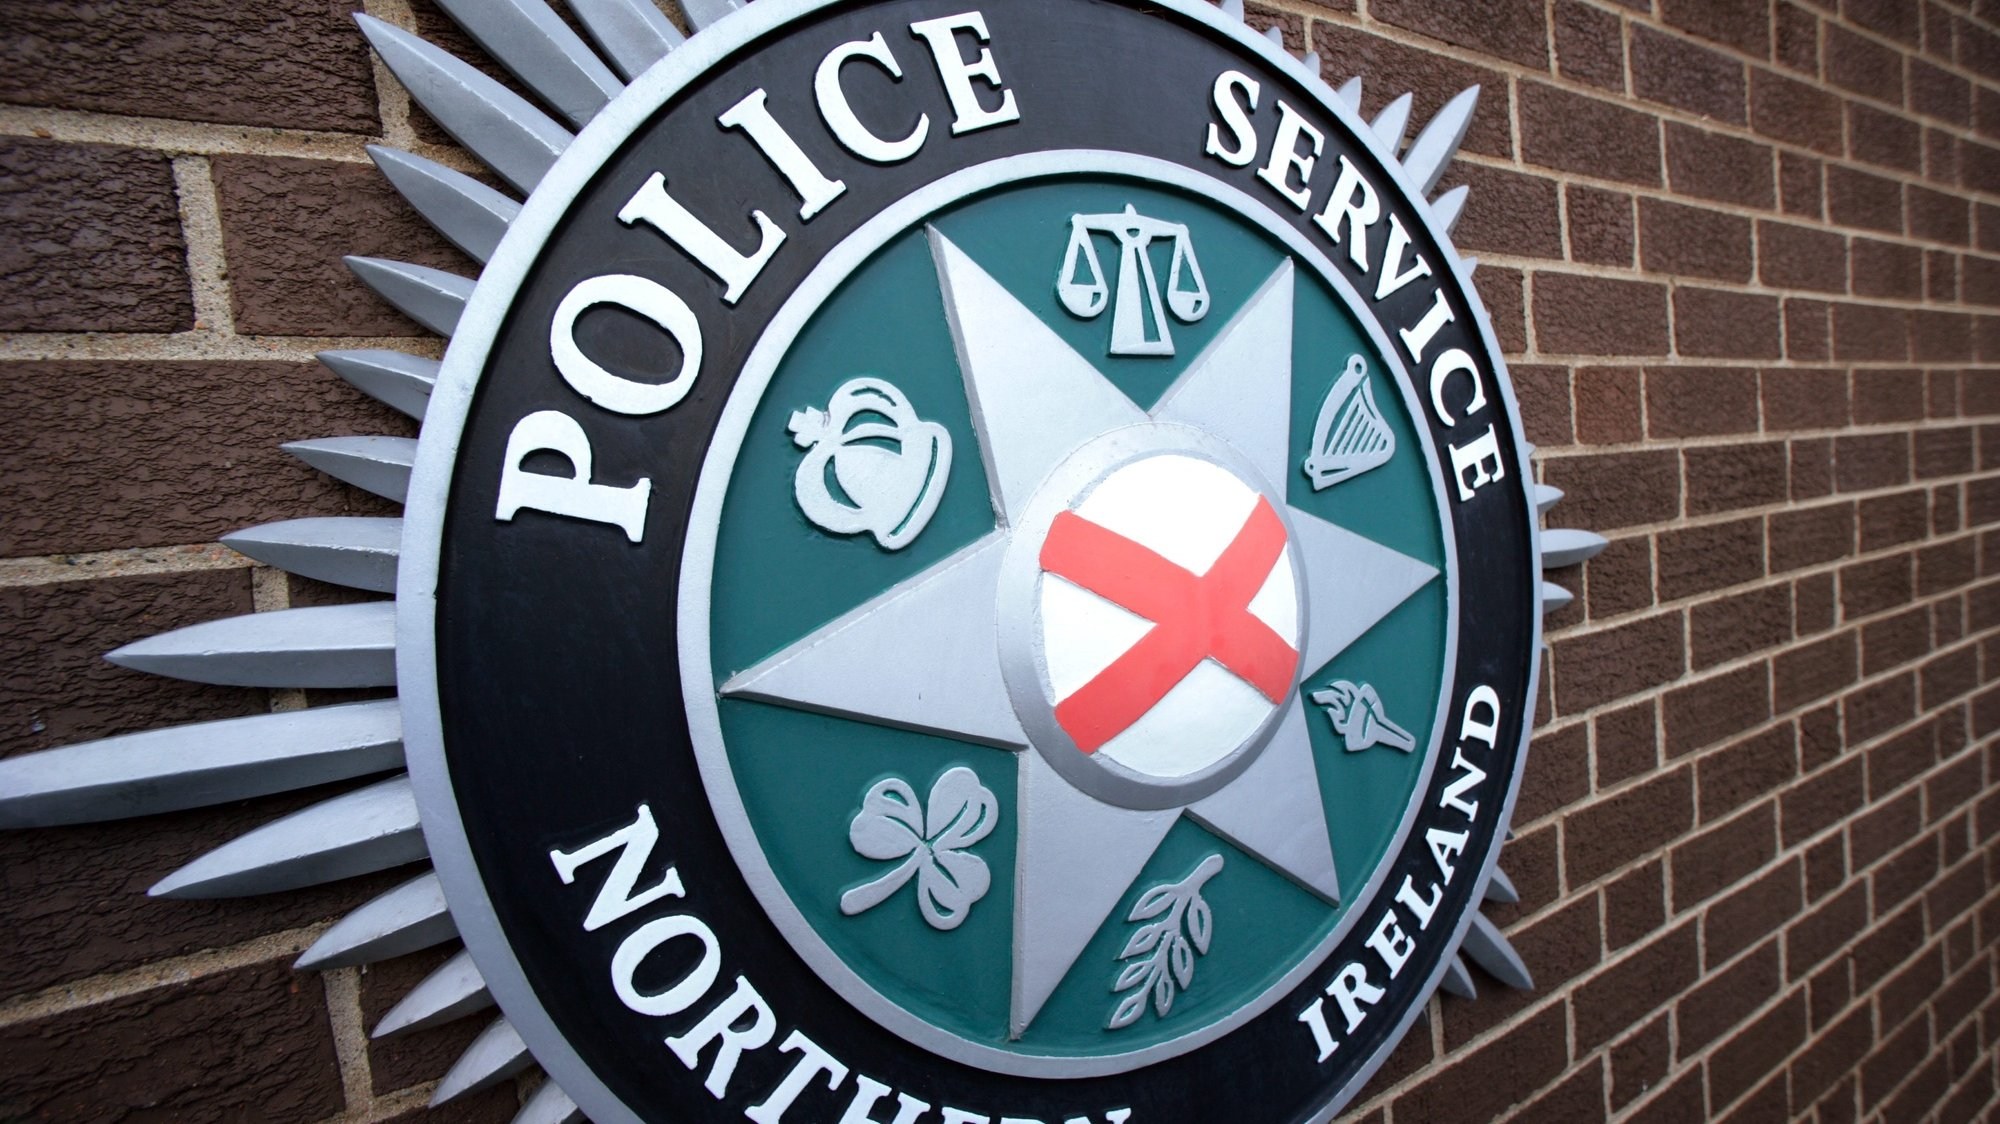 epa02018509 The PSNI (Police Service of Northern Ireland) badge outside Police Headquarters, east Belfast, Northern Ireland, on 05, Febuary 2010. A deal between Northern Ireland's biggest parties, the DUP and Sinn Fein, could see policing and justice powers devolved to Northern Ireland on 12 April 2010. A cross-community vote on devolving the powers will be held in the Northern Ireland Assembly on 09 March 2010.  EPA/PAUL MCERLANE